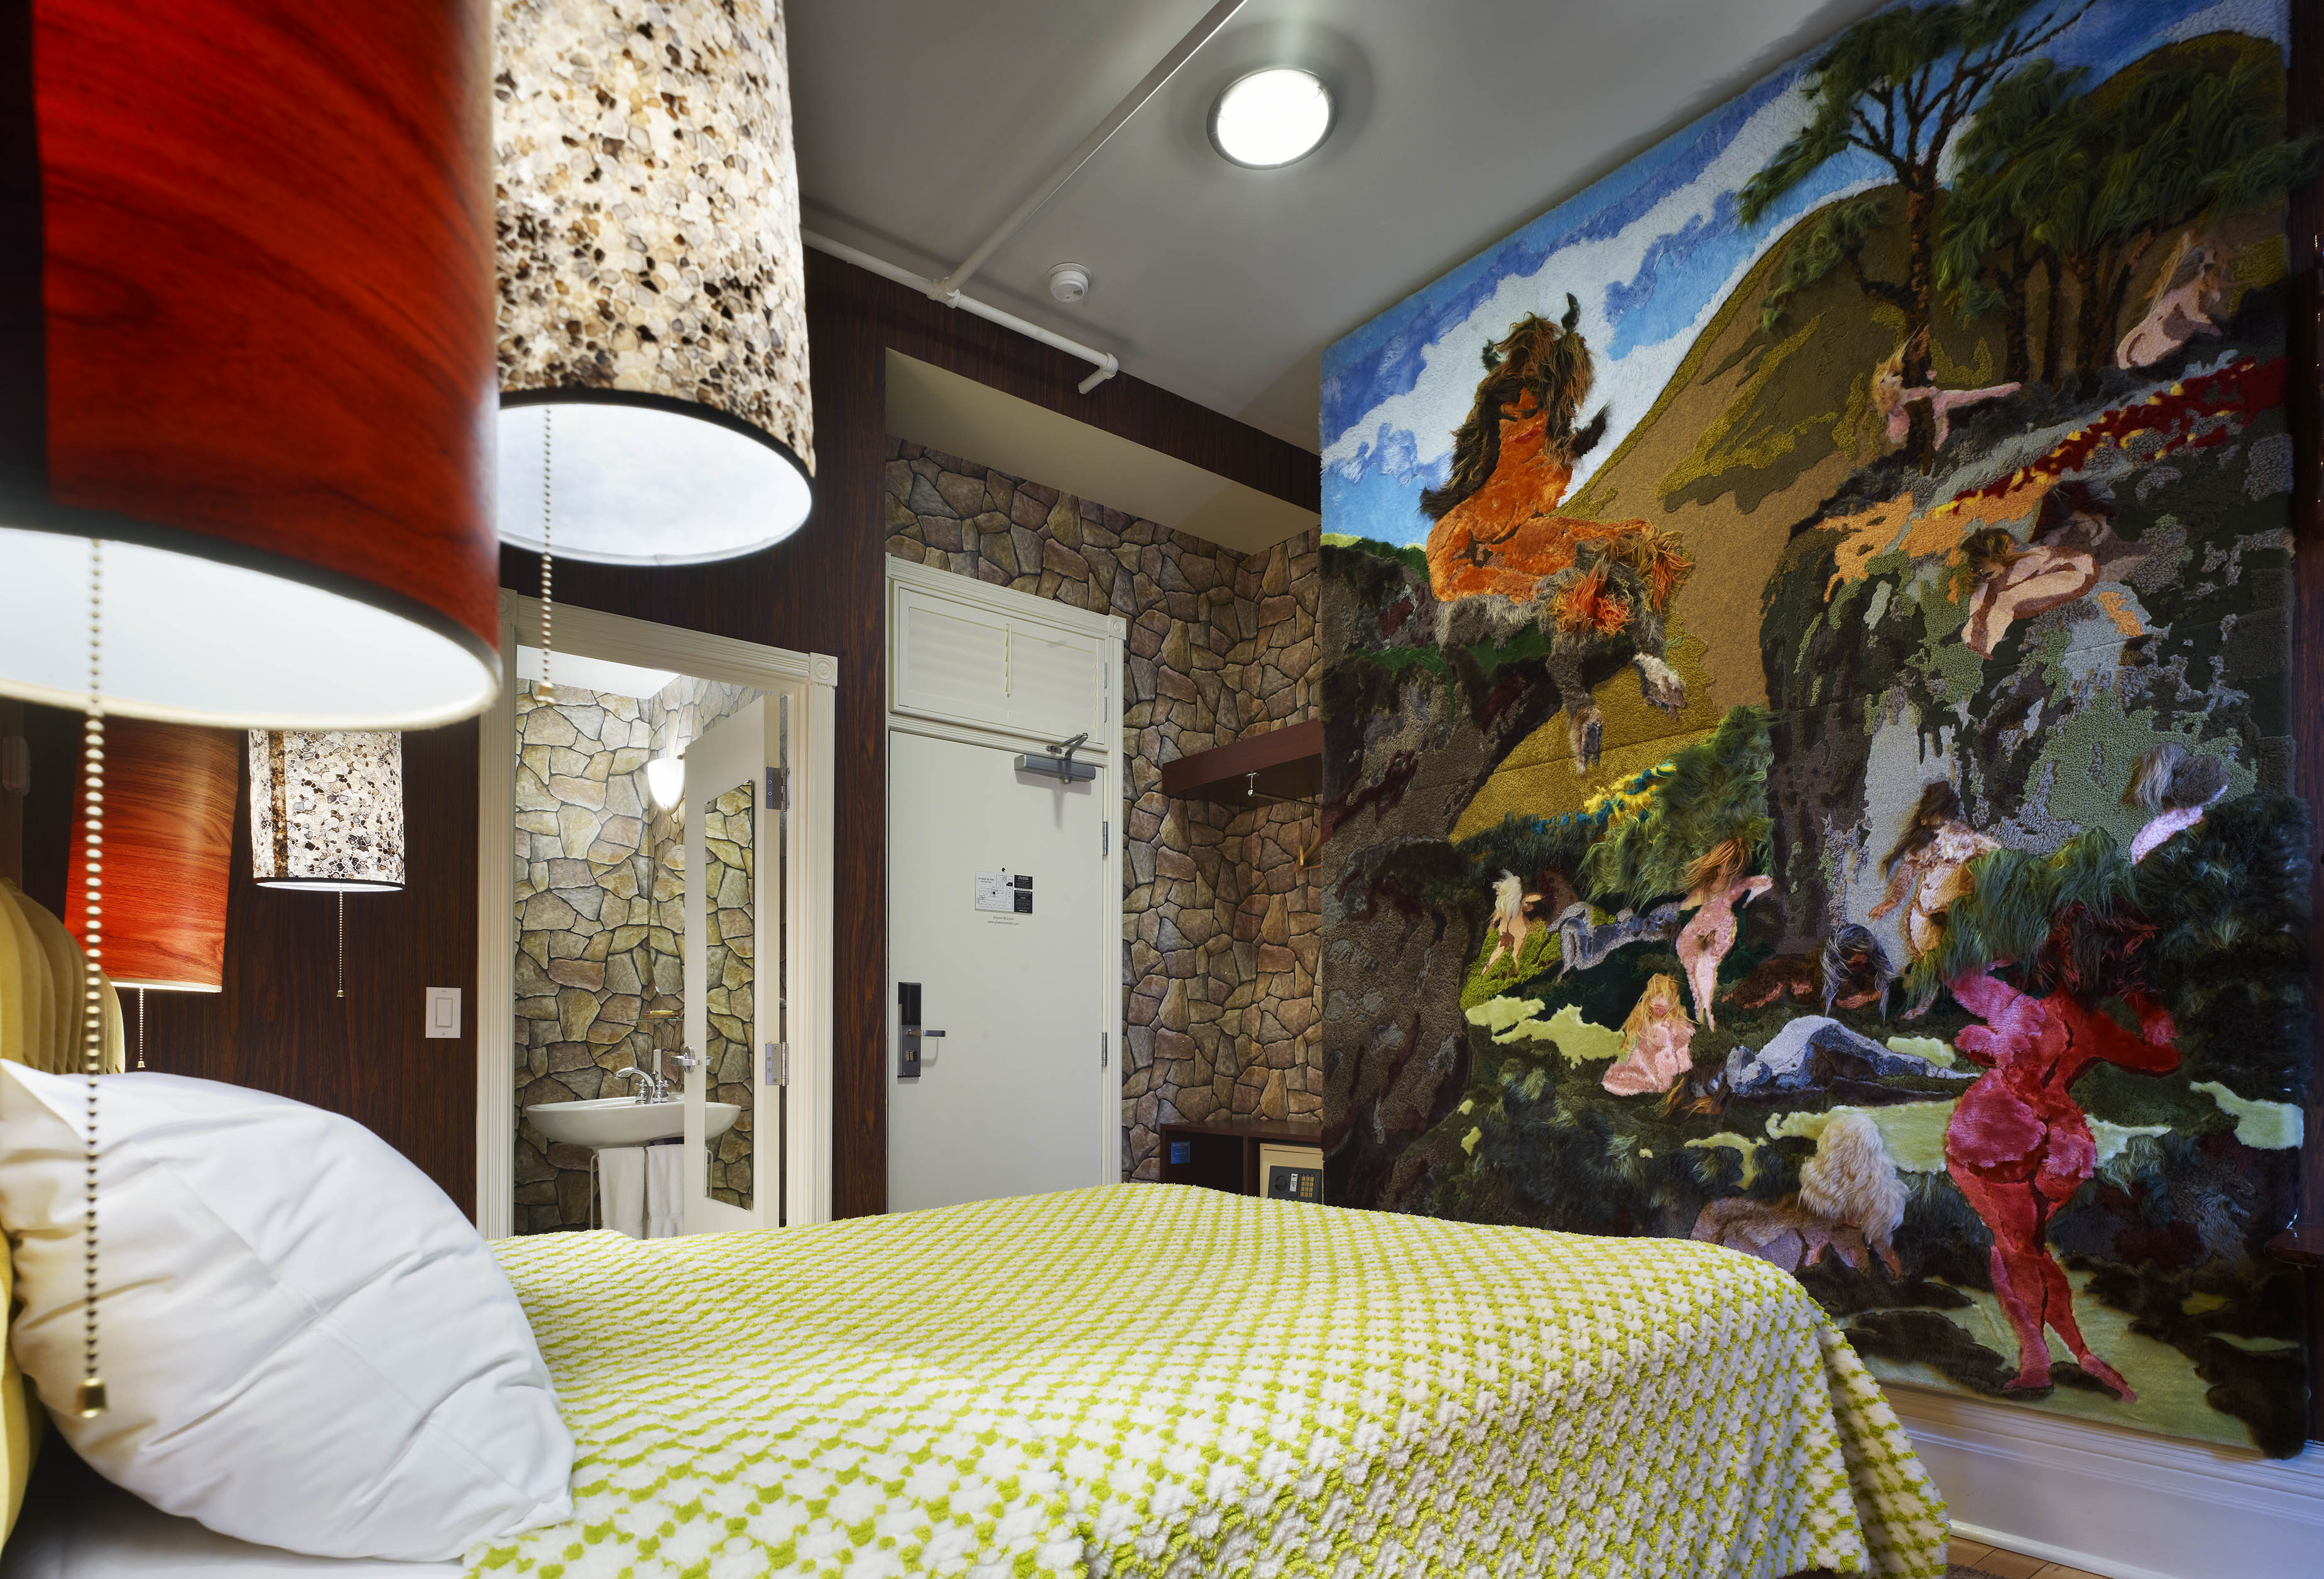 market martinhal six children hotels themed room s hoterliers get rooms family and families who space the boutique chiado content play want what at lisbon hotel mn